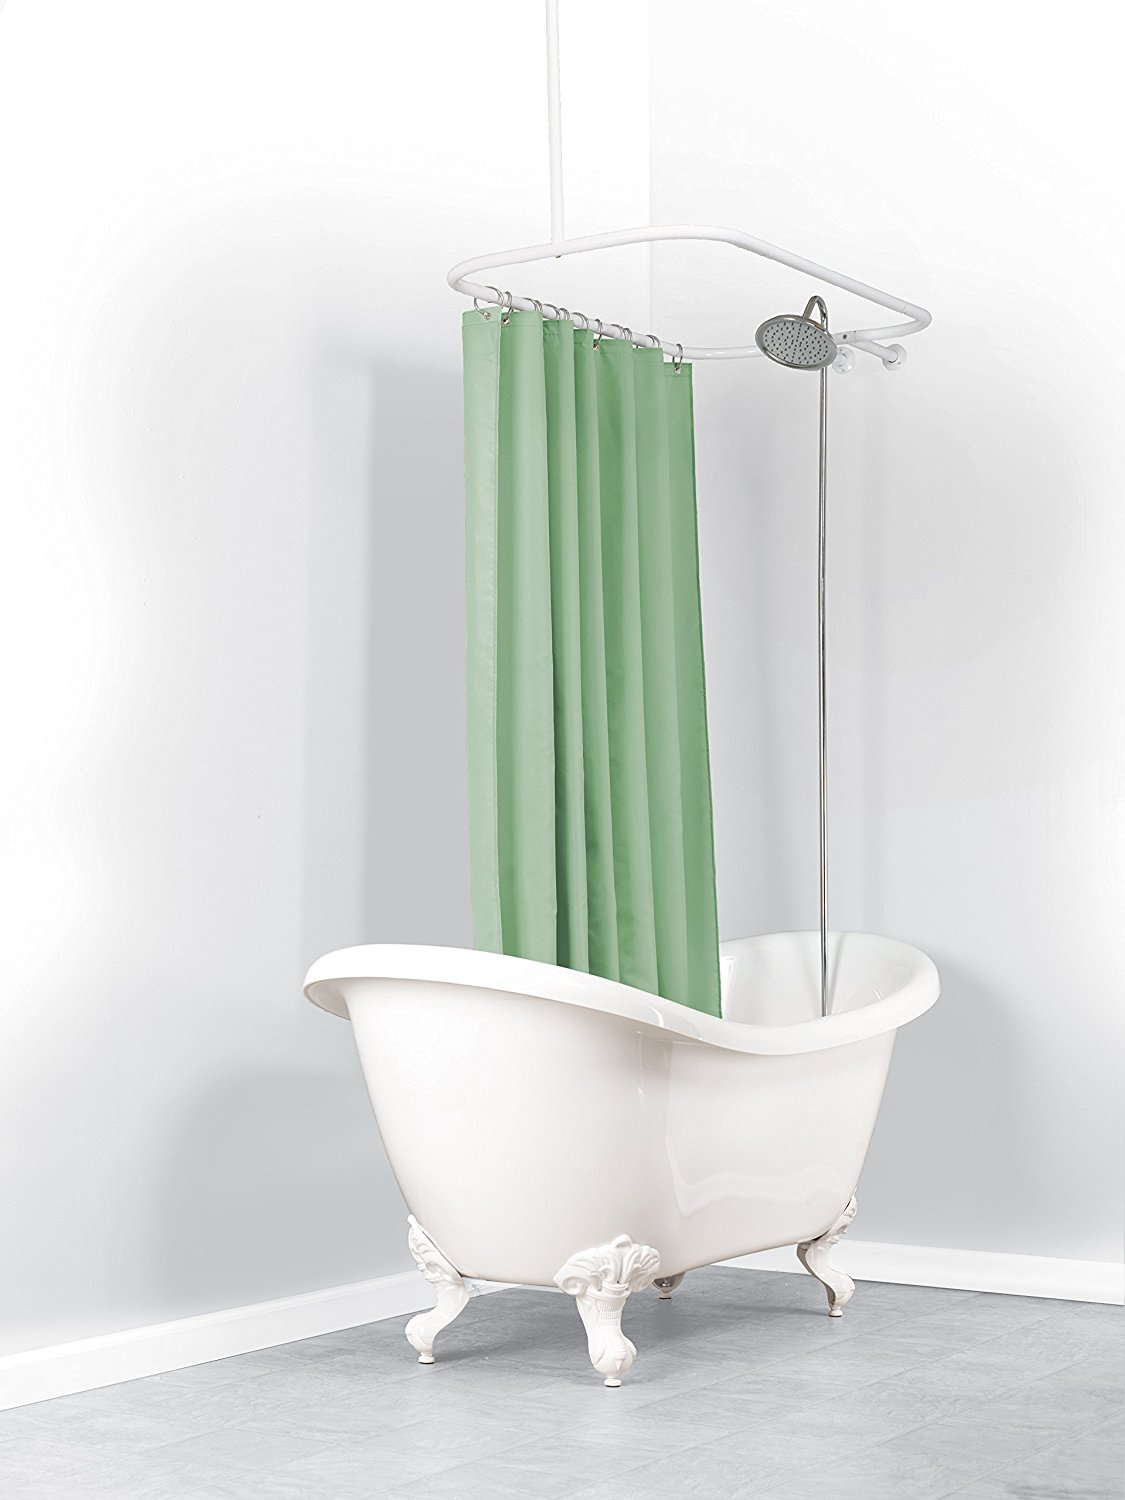 Claw Foot Tub Shower Curtains | Clawfoot Tub Curtains | Clawfoot Tub Shower Curtain